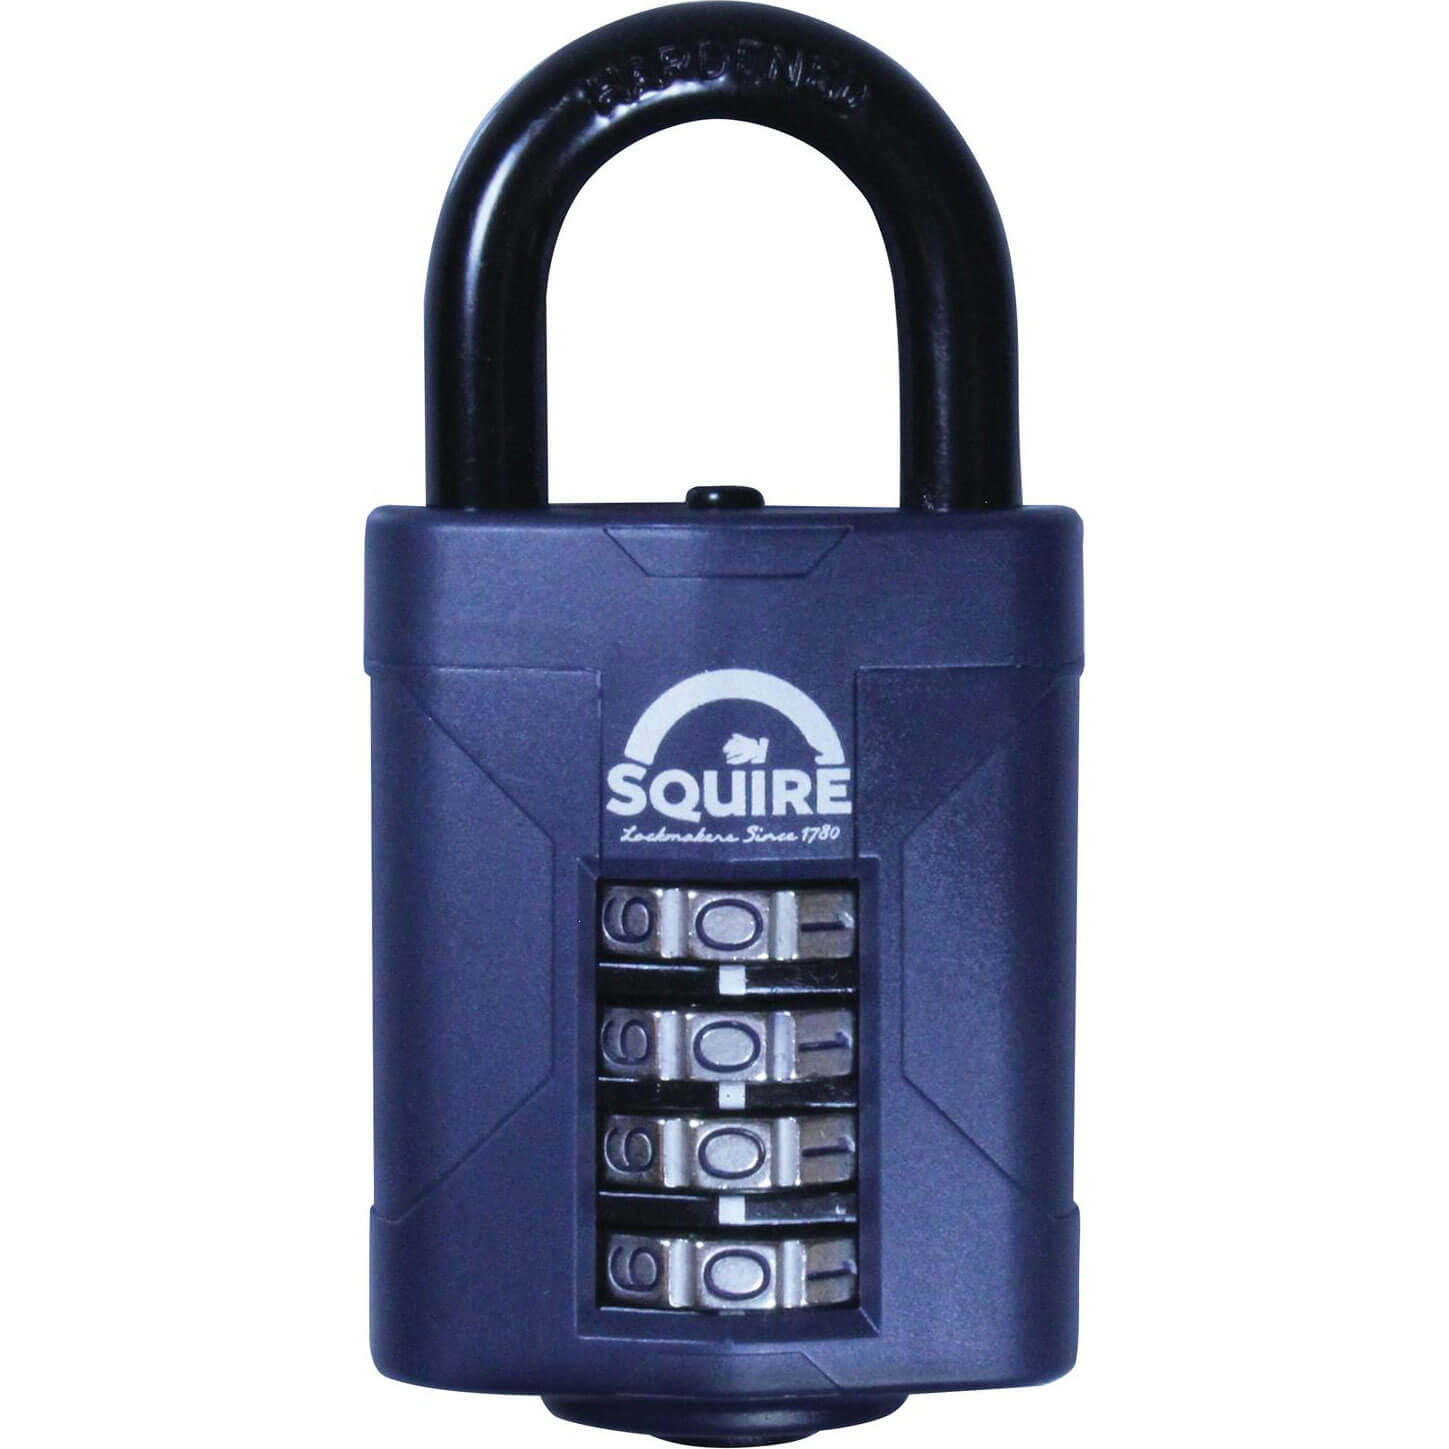 Image of Henry Squire Push Button Combination Padlock 50mm Standard